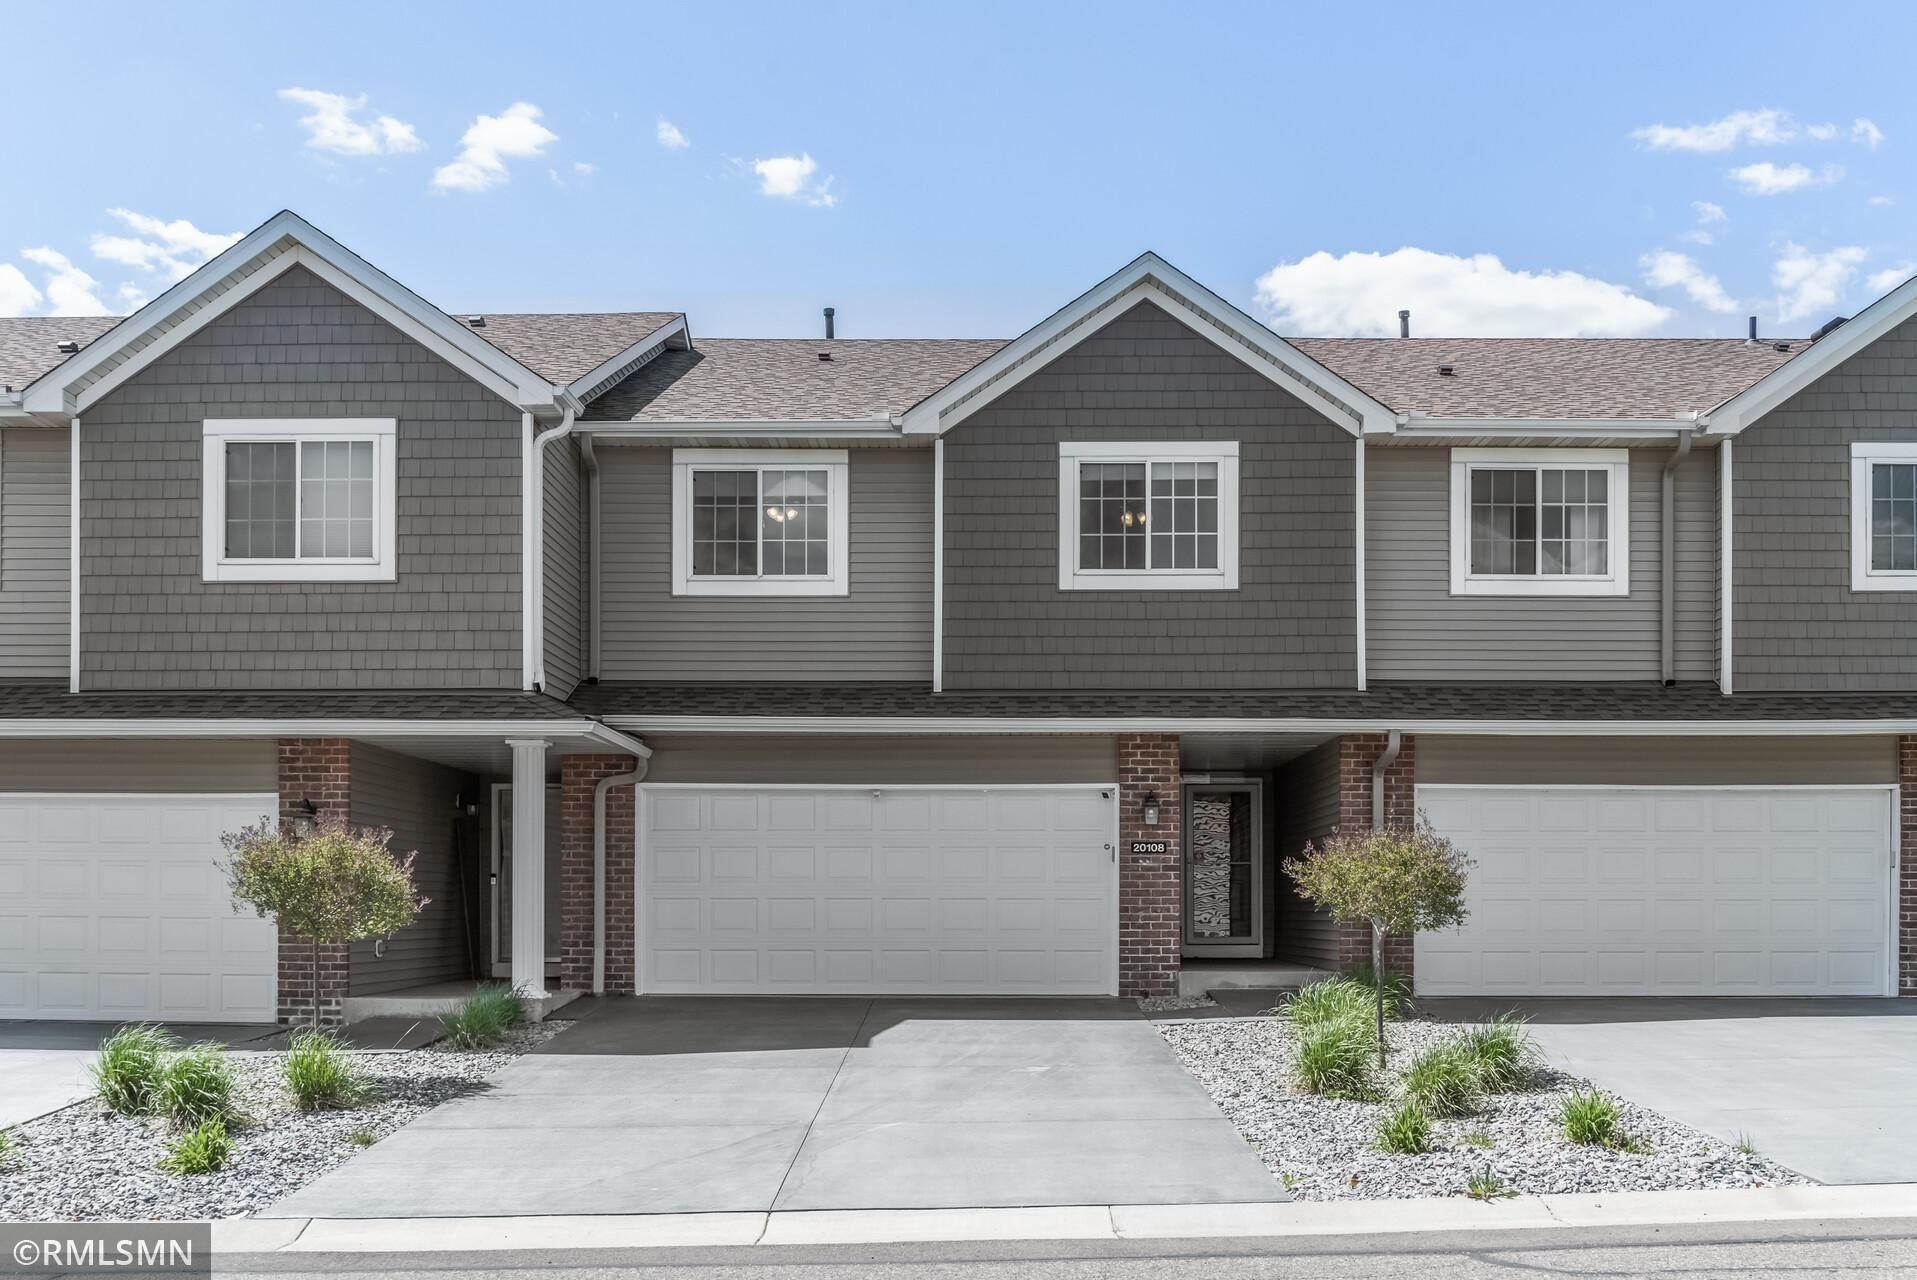 Photo of 20108 Home Fire Way, Lakeville, MN 55044 (MLS # 5741431)